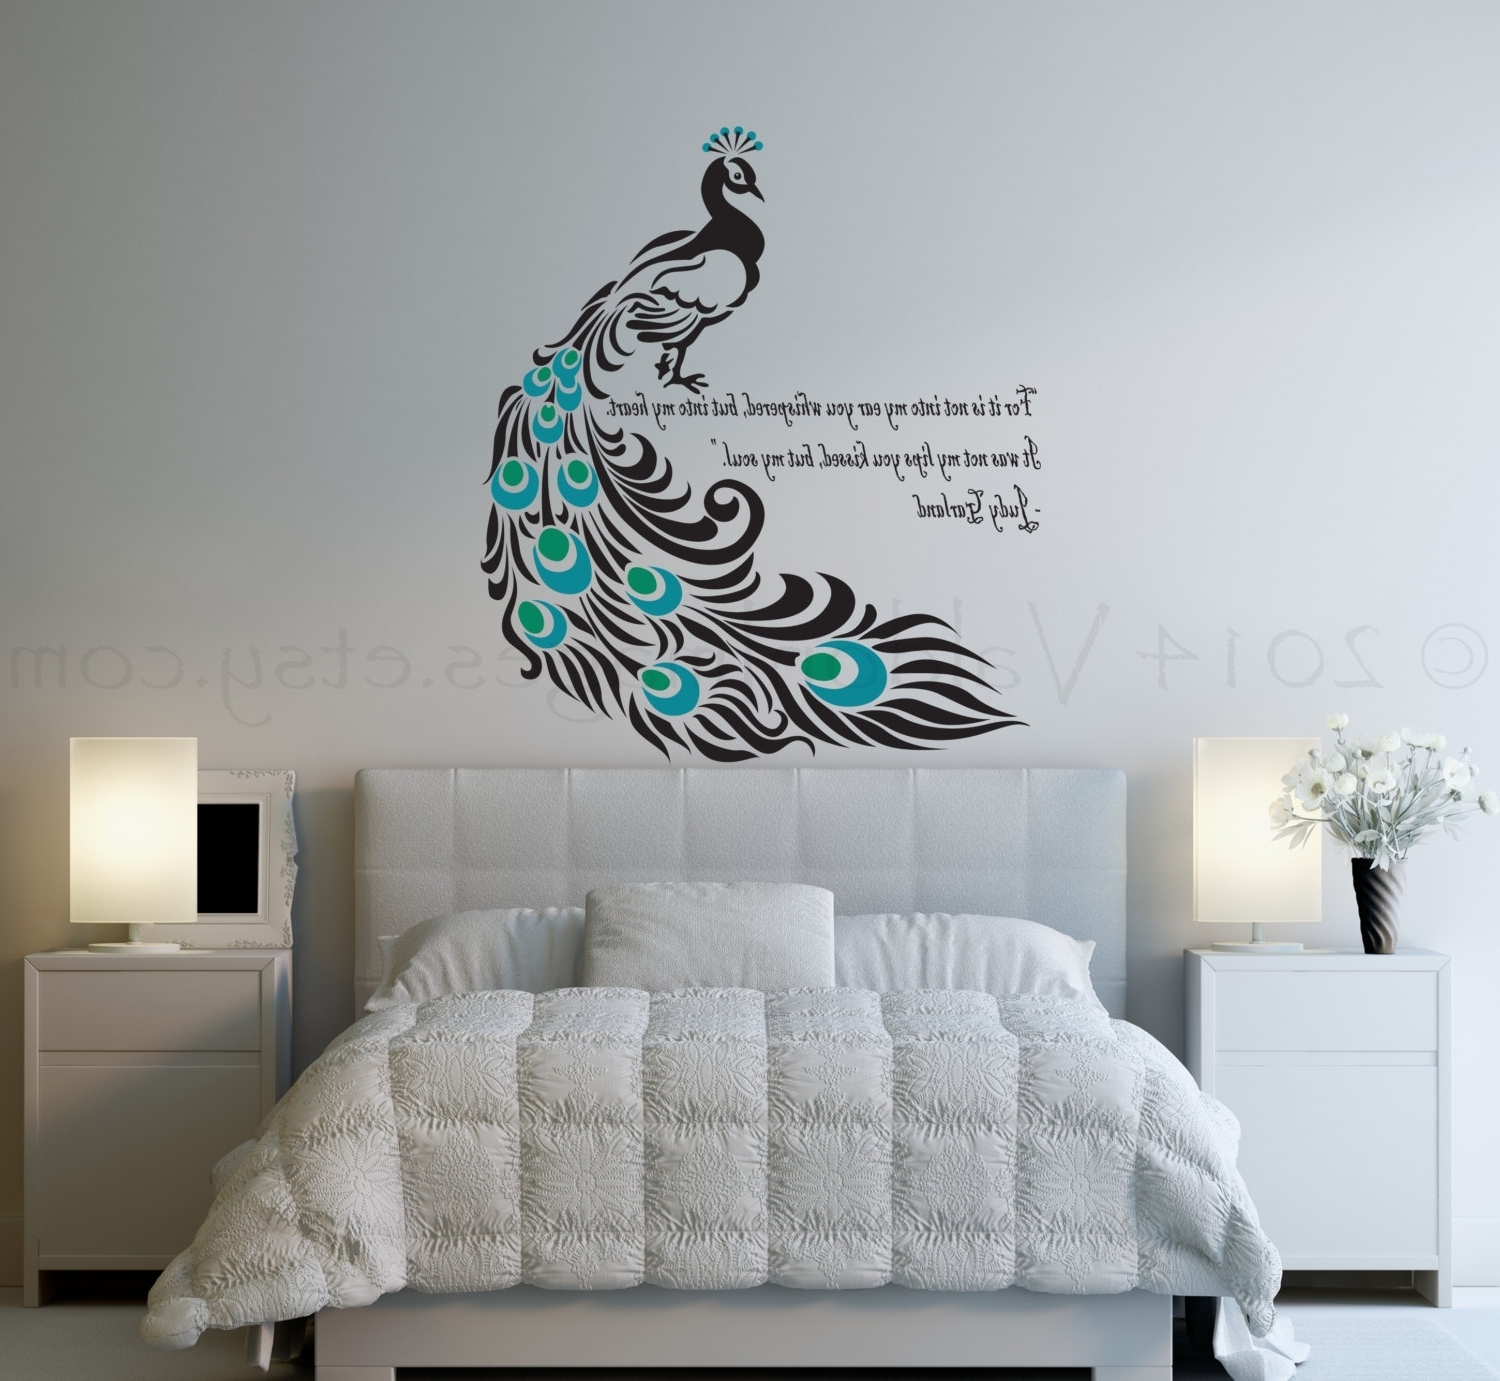 Widely Used New Wall Art Painting Ideas For Bedroom (View 13 of 15)